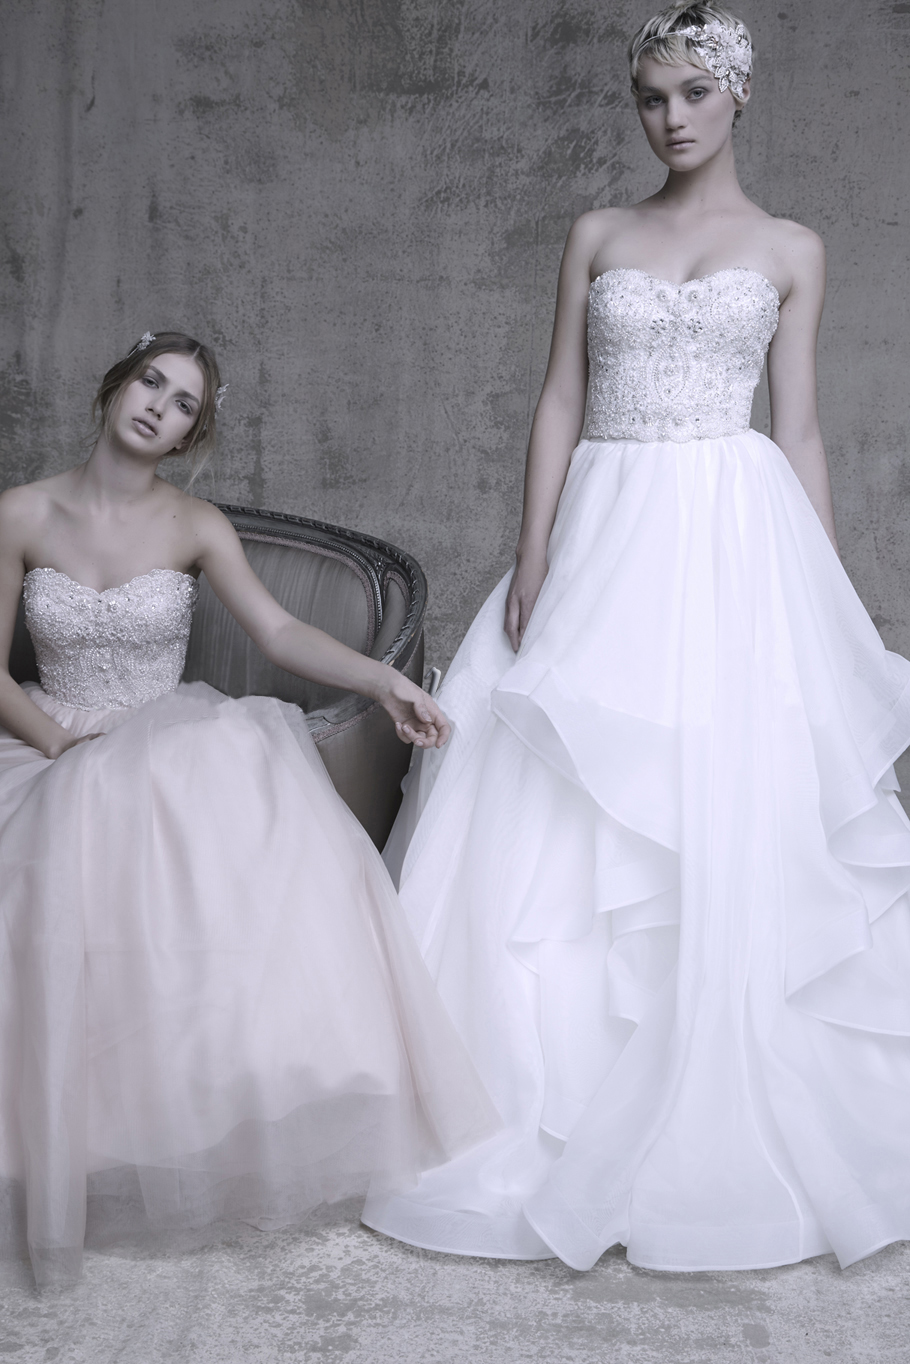 Design your own wedding dress bleu bridal gowns for Design ur own wedding dress